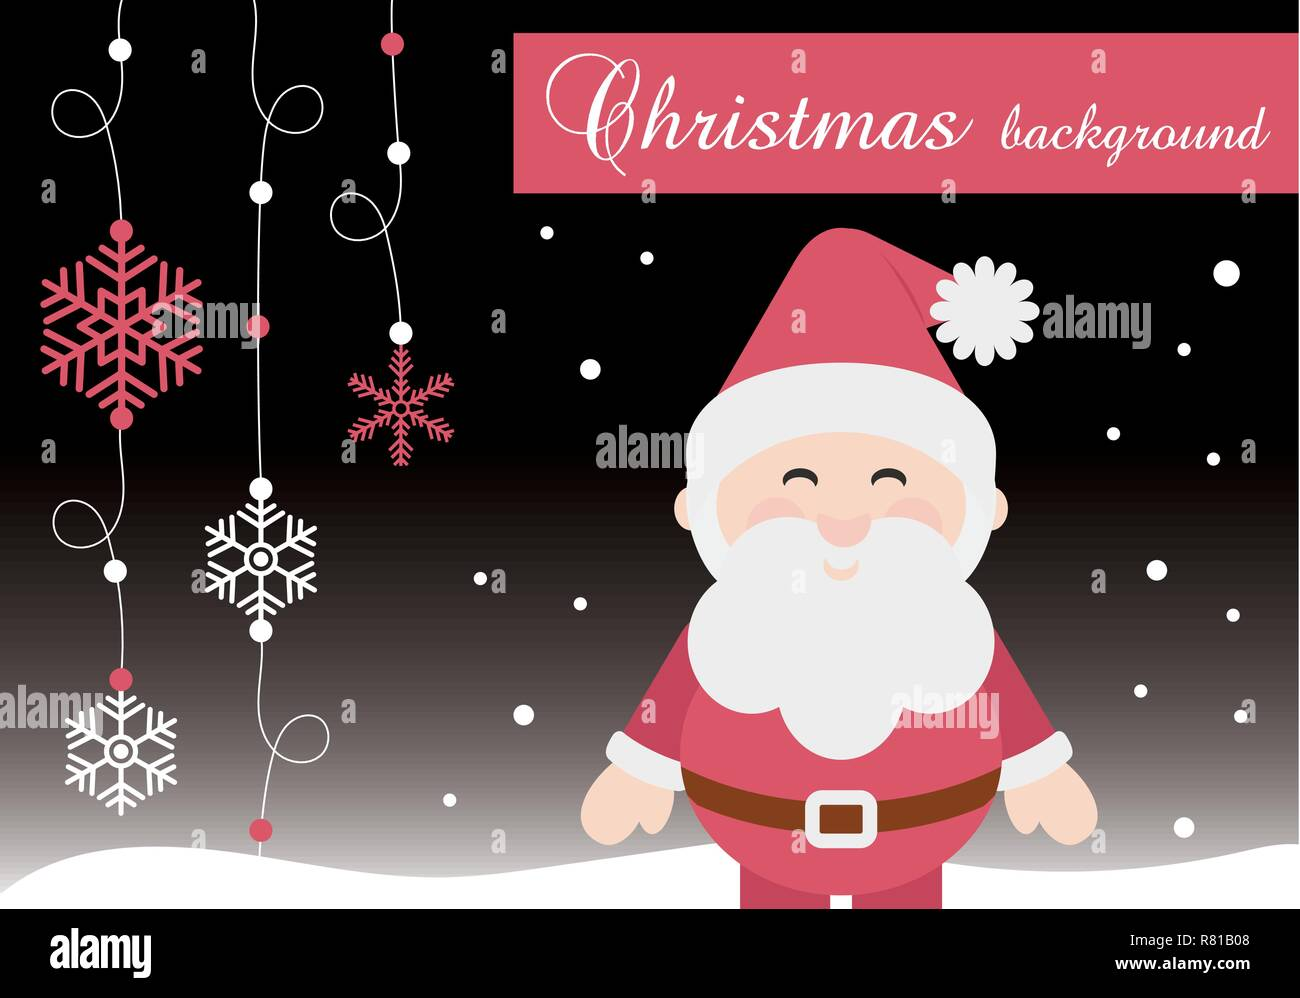 Joyeux Noël Père Noël Cute Vector Illustration Version Banner mur affiche Carte de souhaits fond bleu avec de la neige Photo Stock